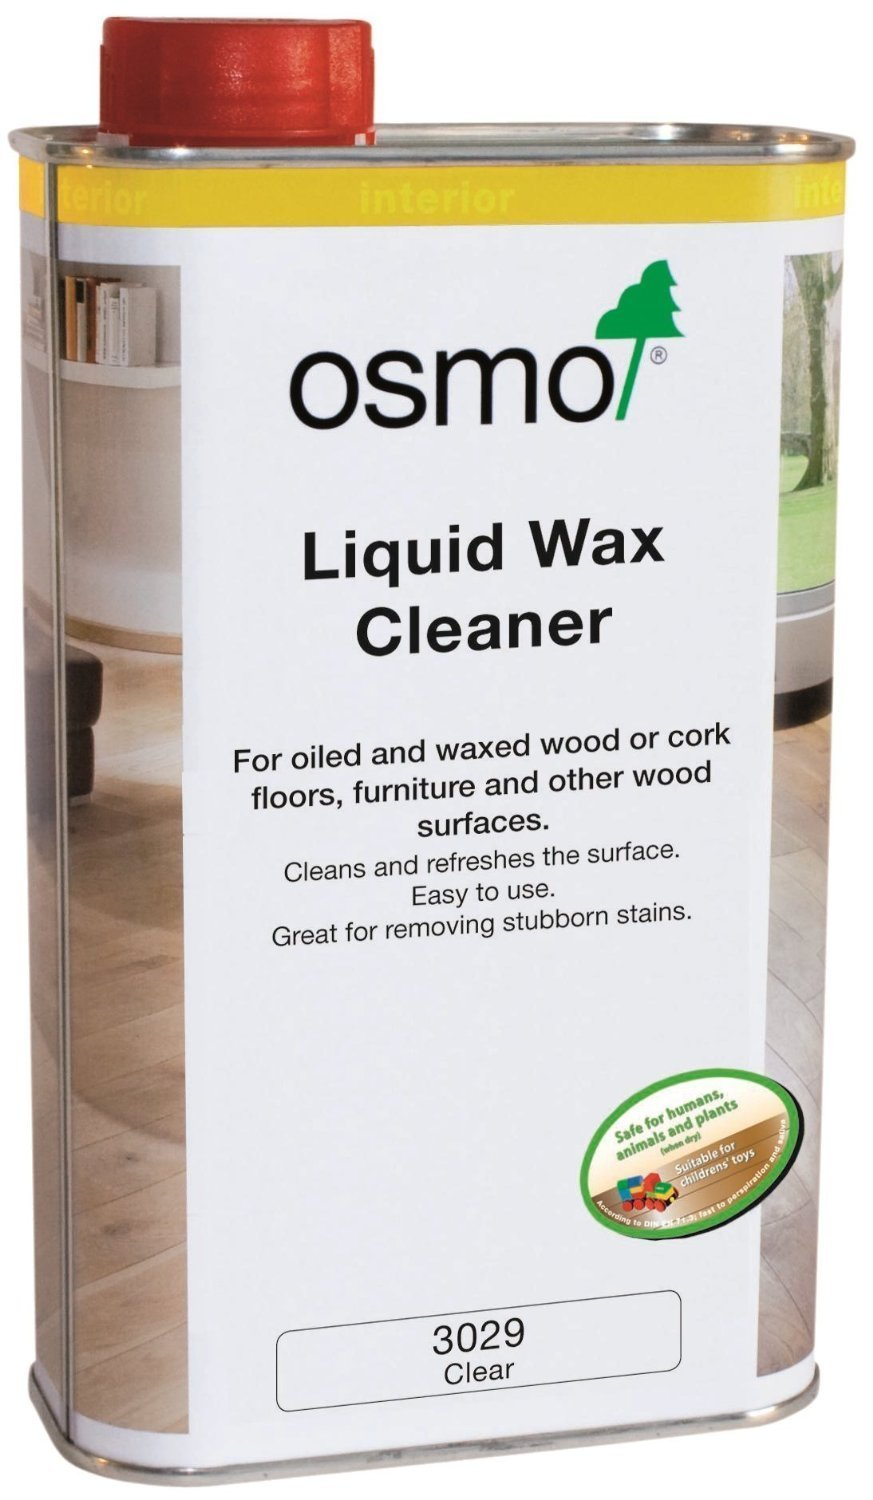 OSMO Liquid Wax Cleaner - 1 Liter by OSMO (Image #1)